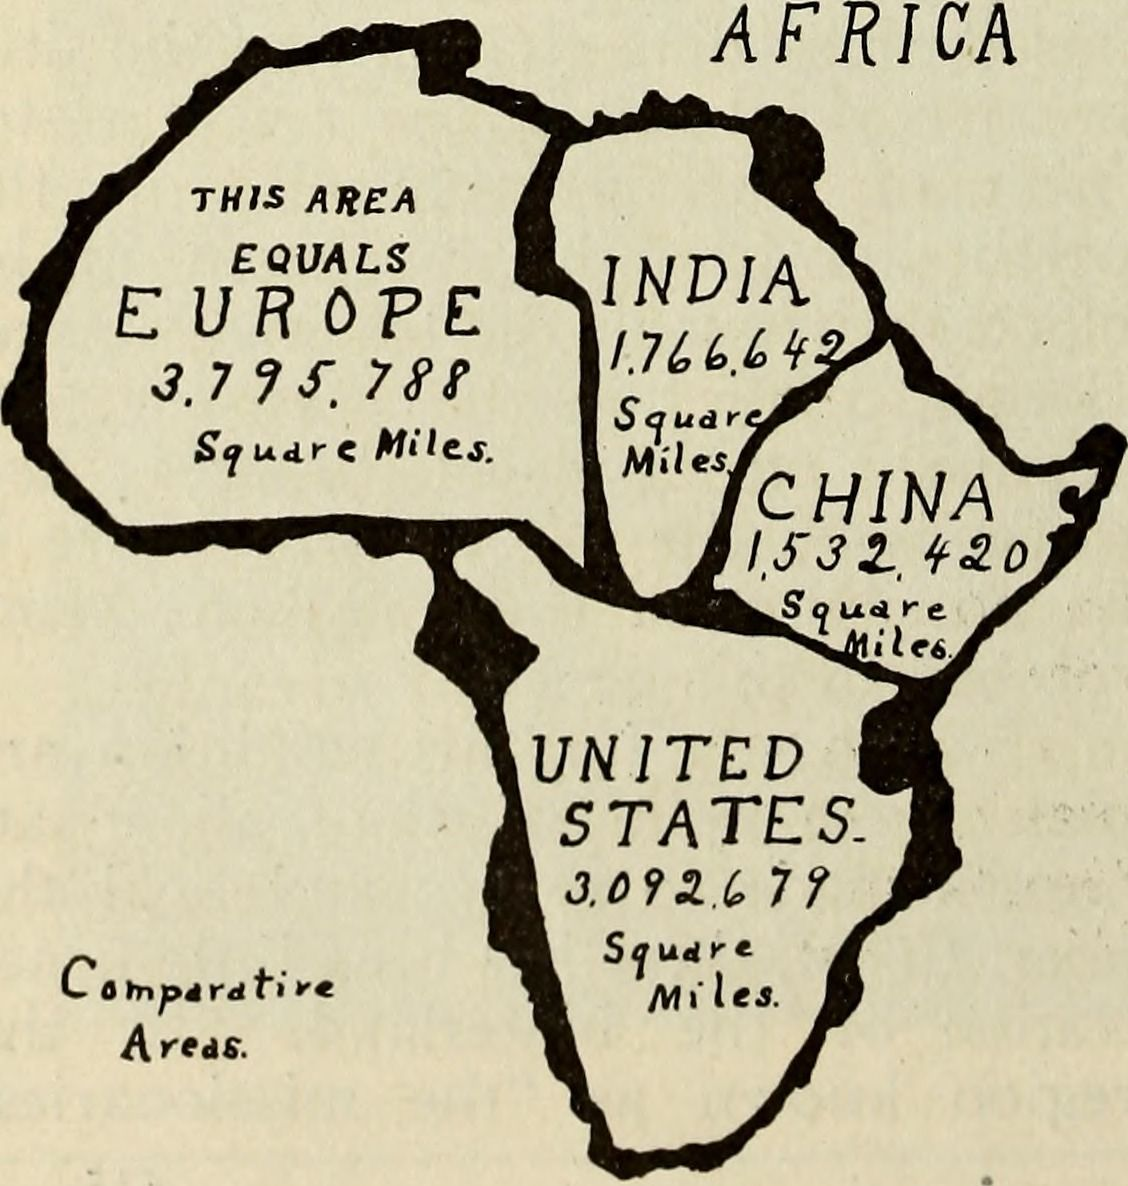 Source Comparative Map Africa Vs US China India Europe - Real map us in africa